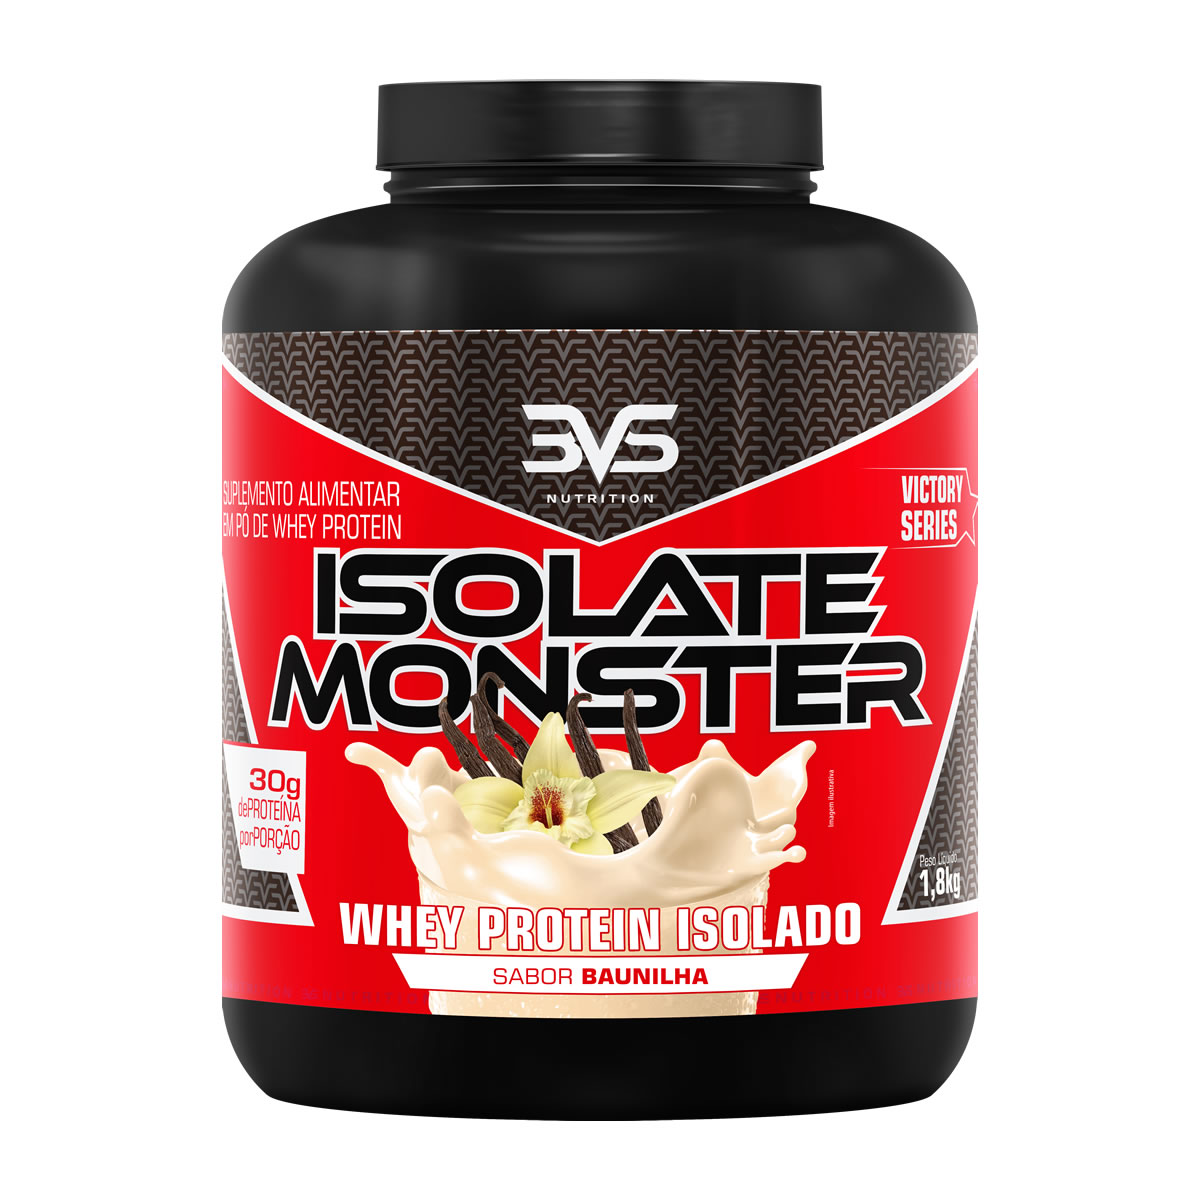 Whey Protein Isolate Monster 1,8KG - 3VS Nutrition